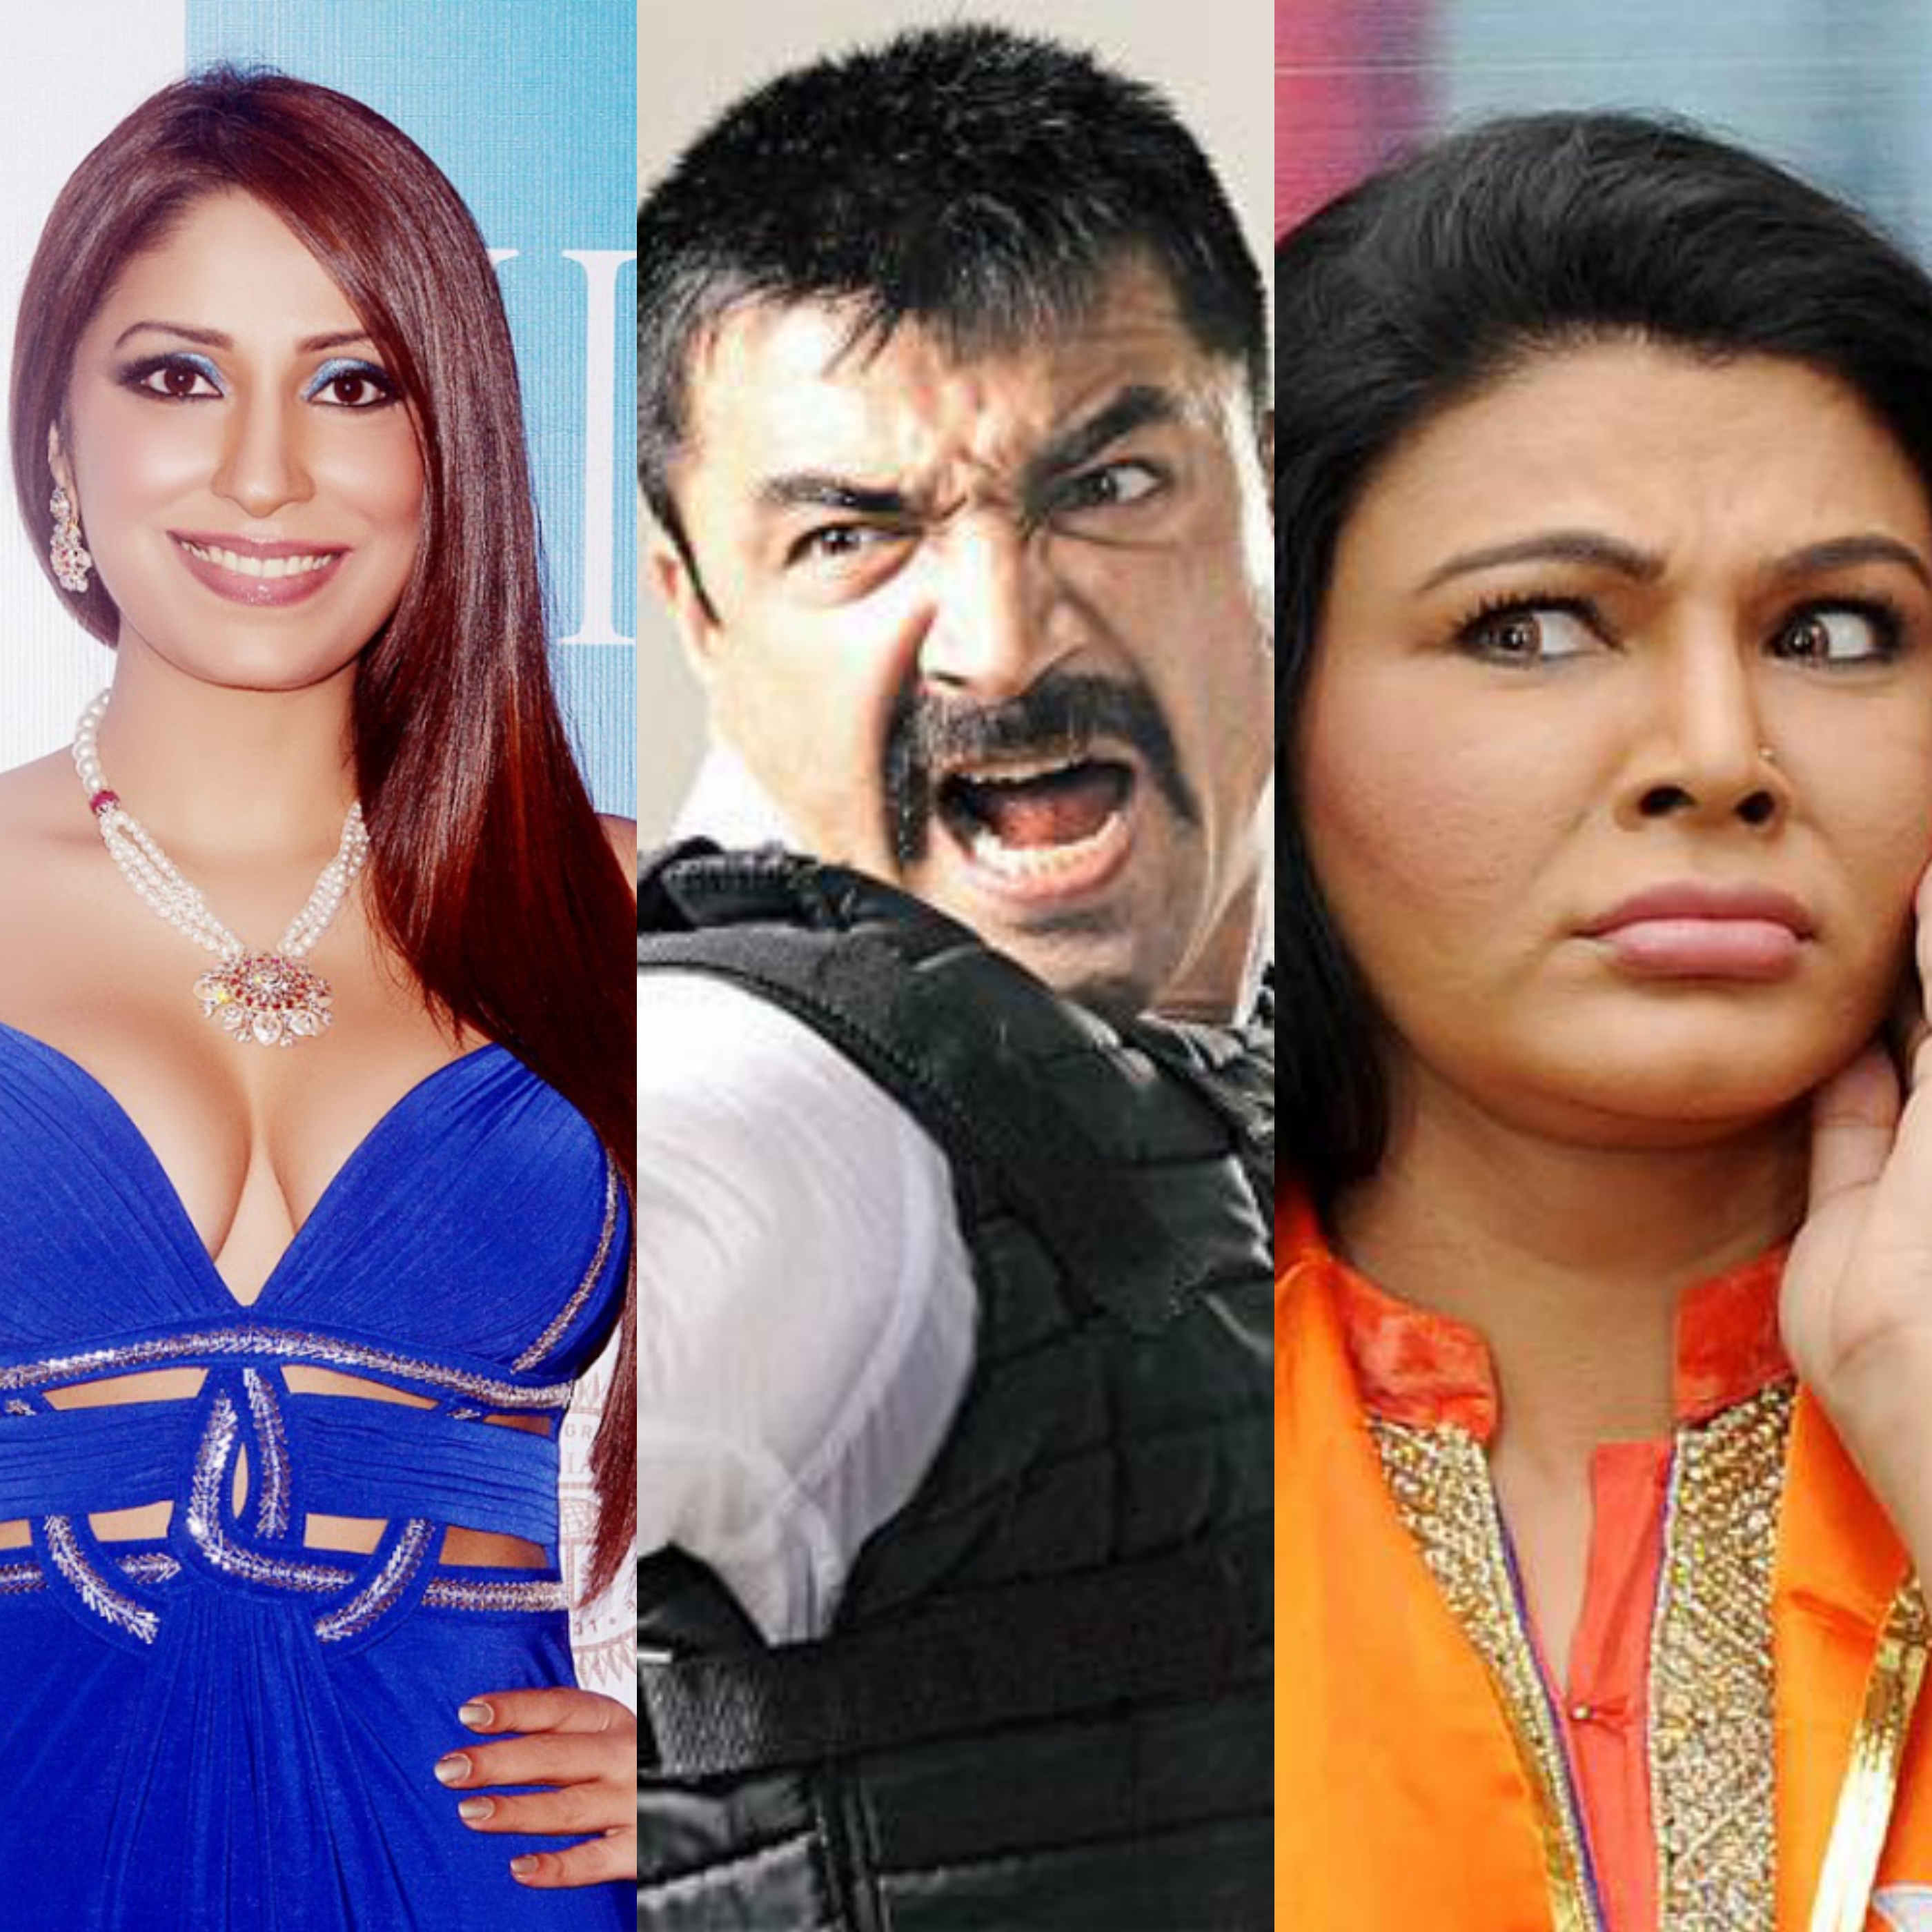 Indian Celebrity who would do Anything for Publicity